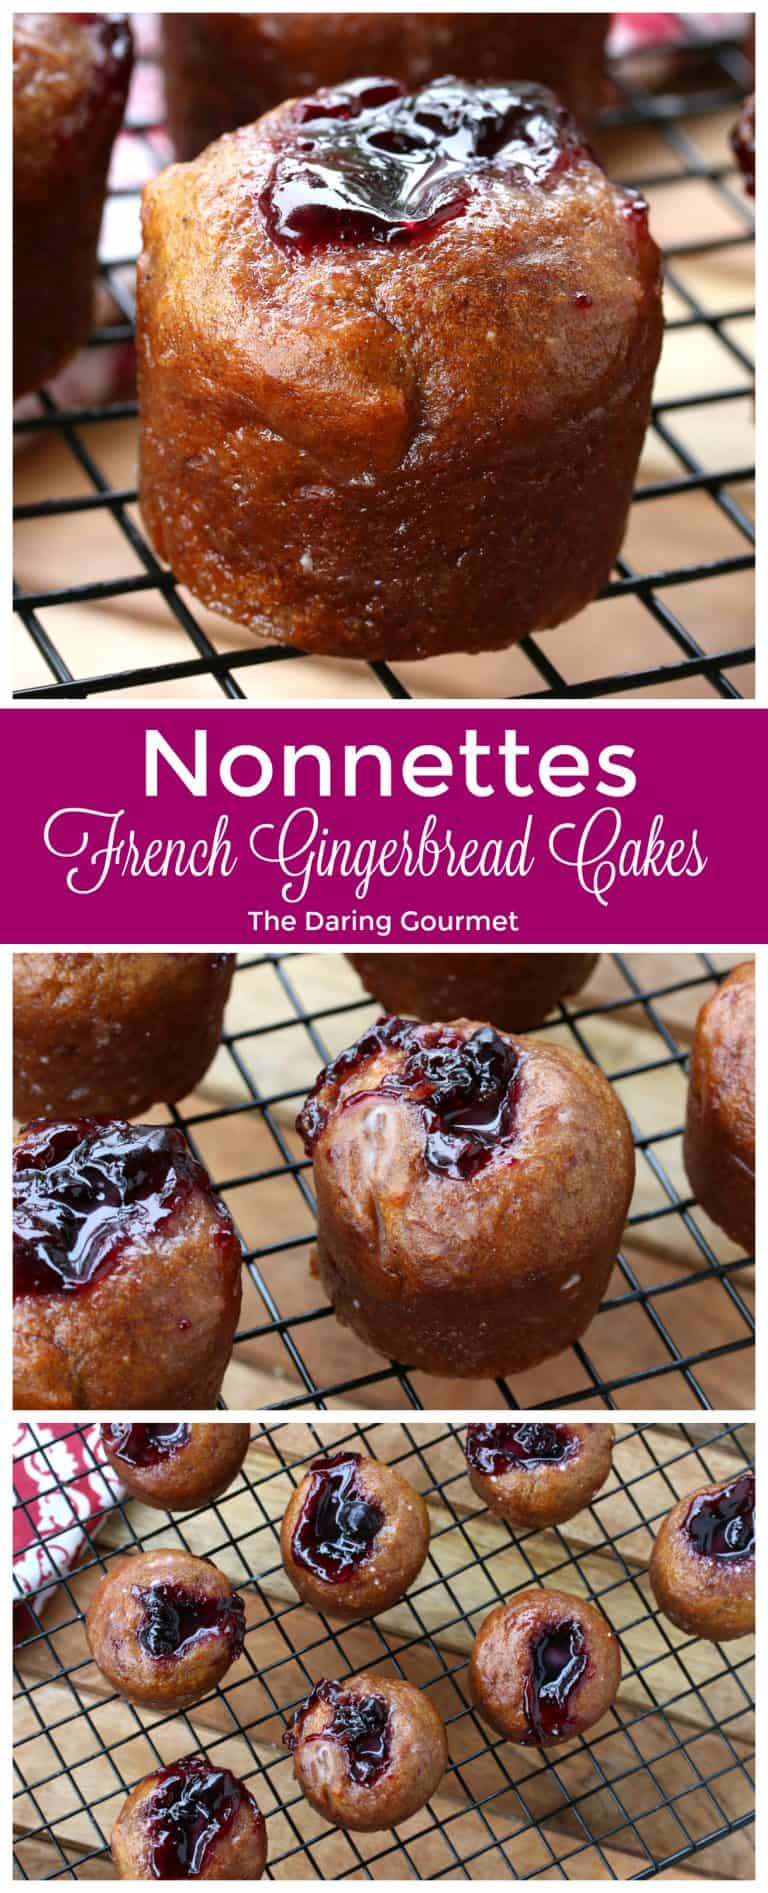 nonnettes french gingerbread cakes